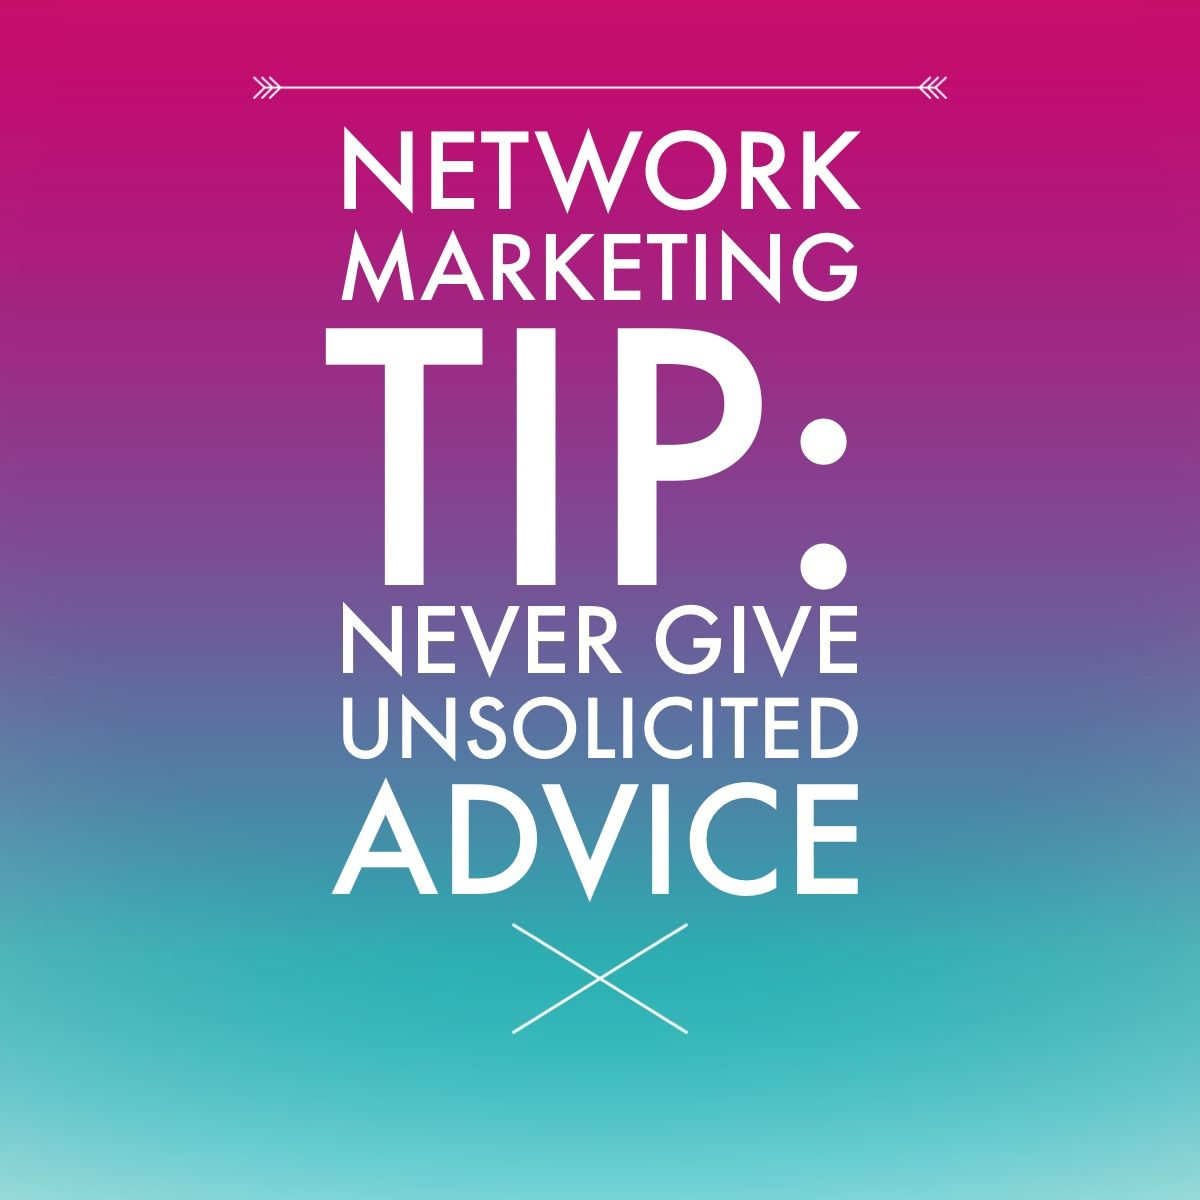 Network Marketing Tip: Never give unsolicited advice. #networkmarketingtips, #mlm, #topearner #kathleendeggelman, #networkmarketingleader, #businessquotes, #entrepreneur #advice